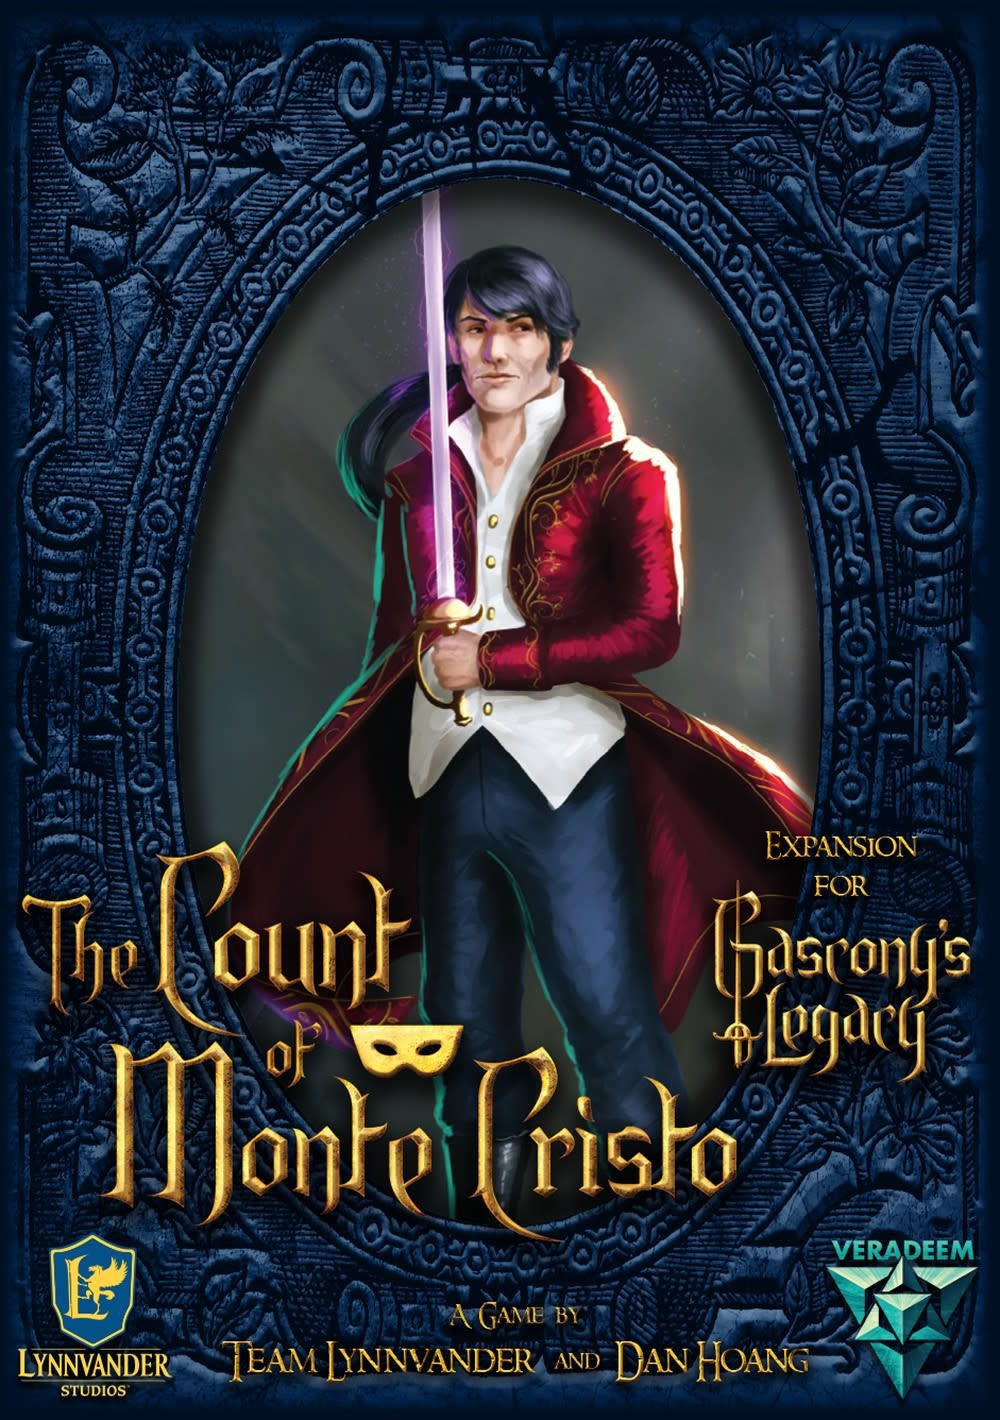 Gascony's Legacy: The Count of Monte Cristo